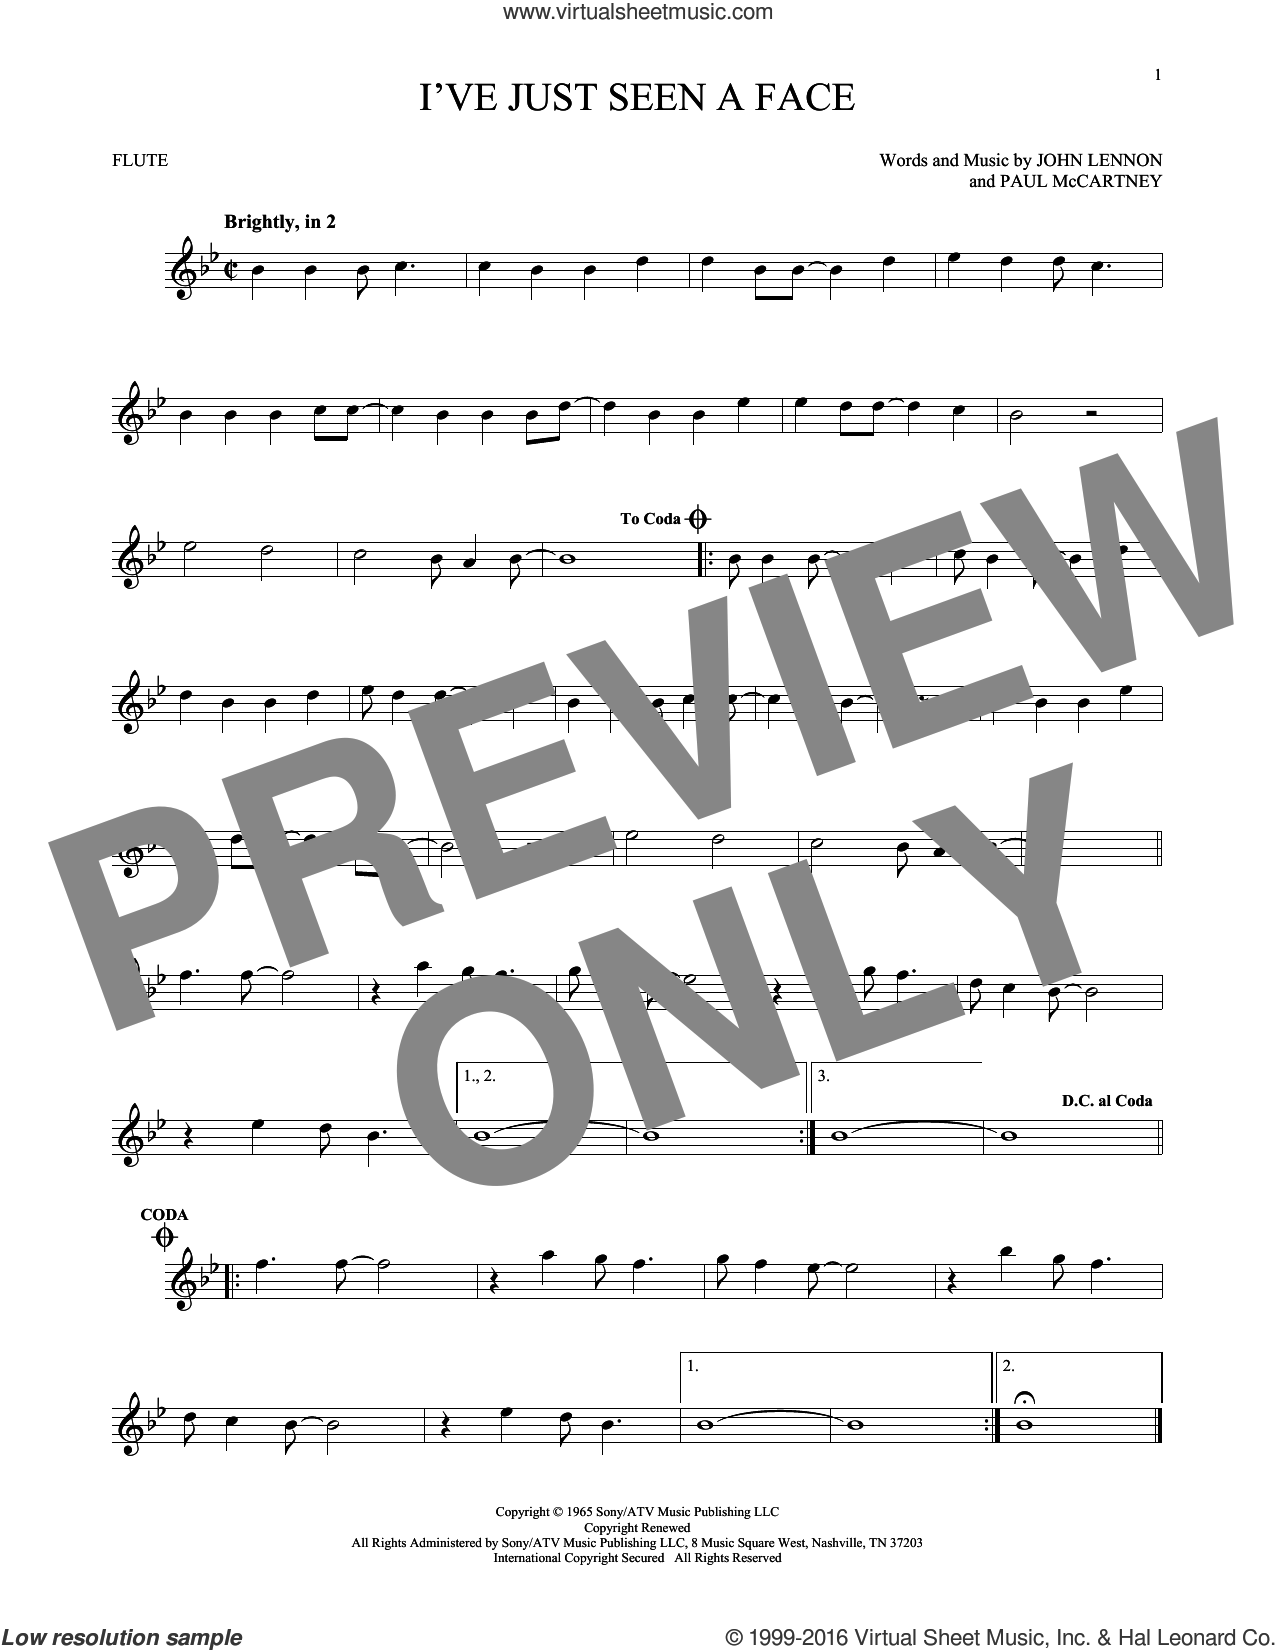 I've Just Seen A Face sheet music for flute solo by The Beatles, John Lennon and Paul McCartney, intermediate skill level